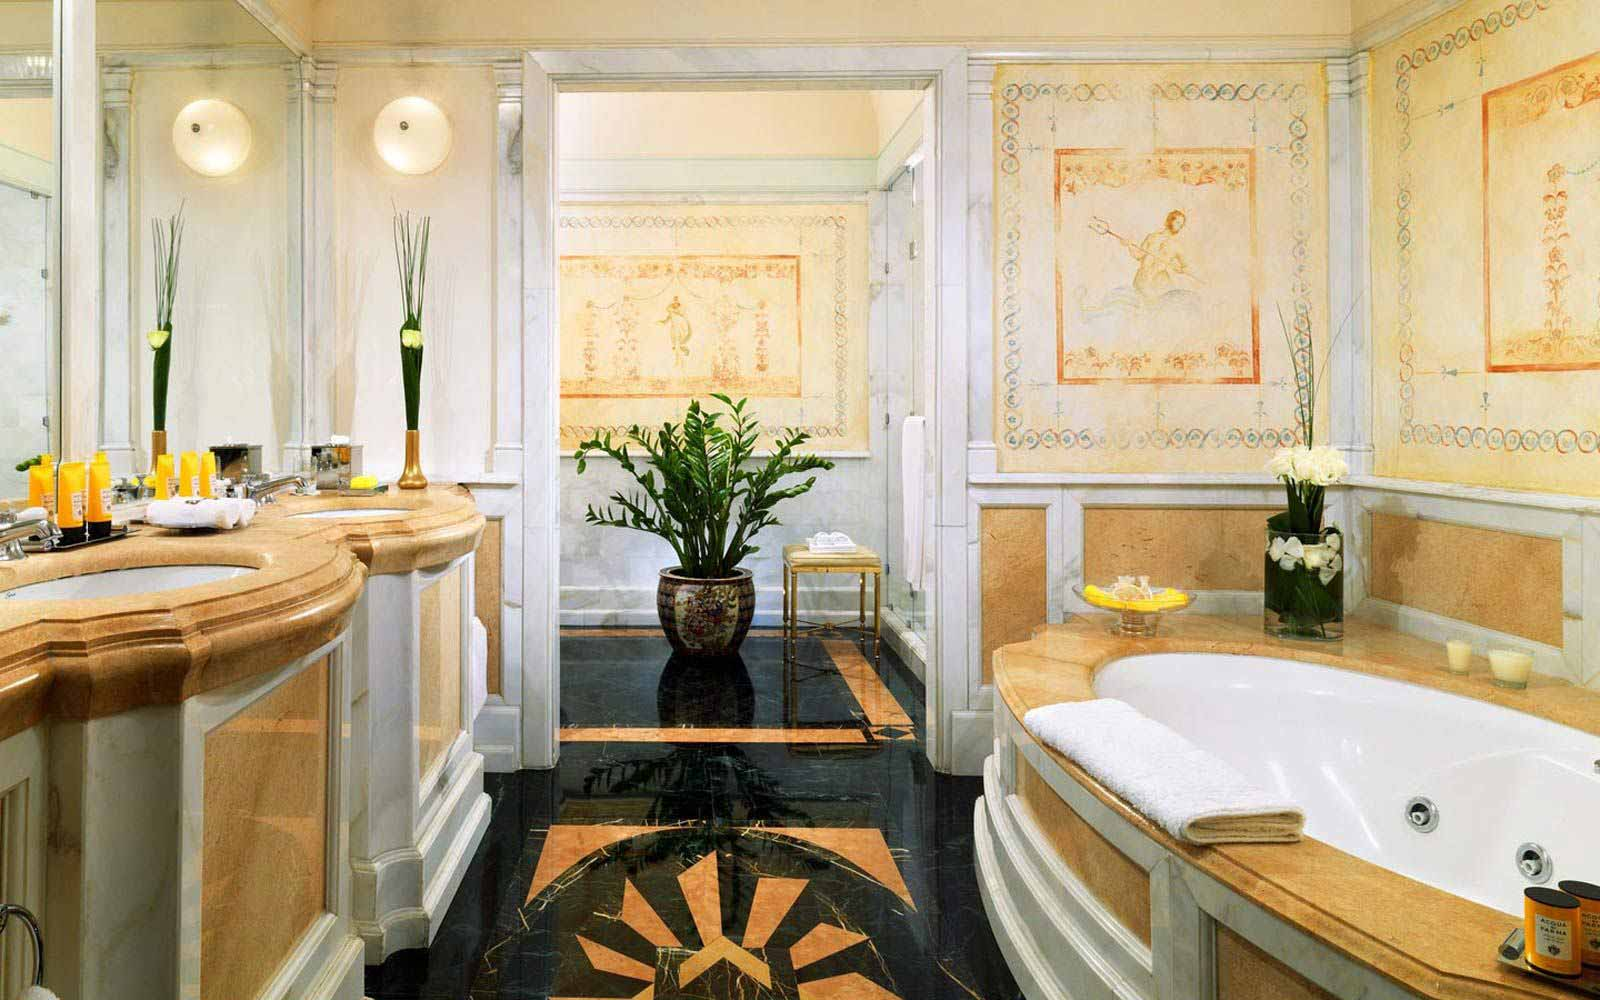 Designer suite bathroom at St.Regis Grand Hotel